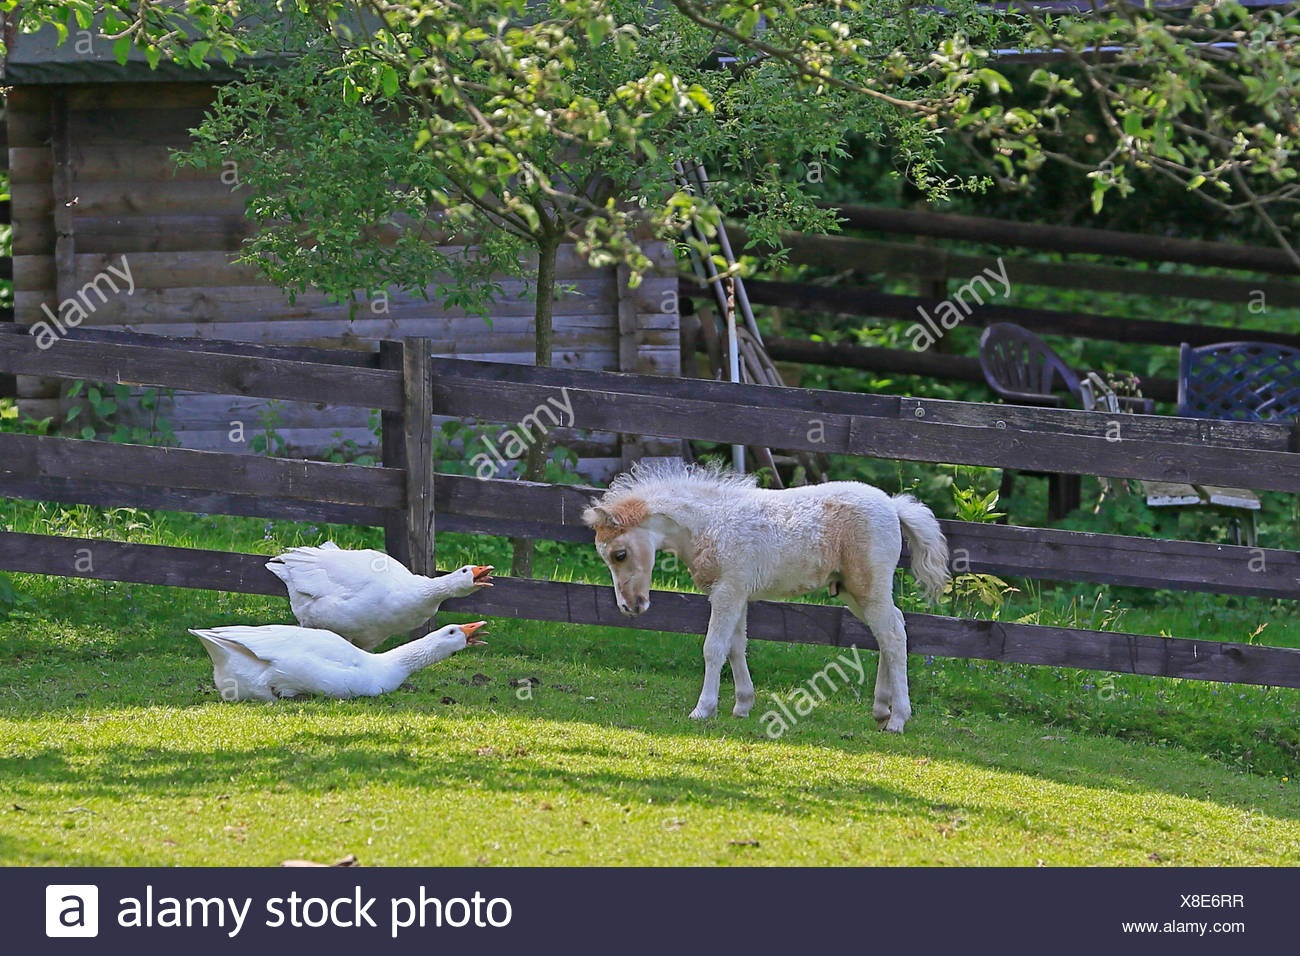 American Miniature Horse Foal at odds with geese, Germany - Stock Image